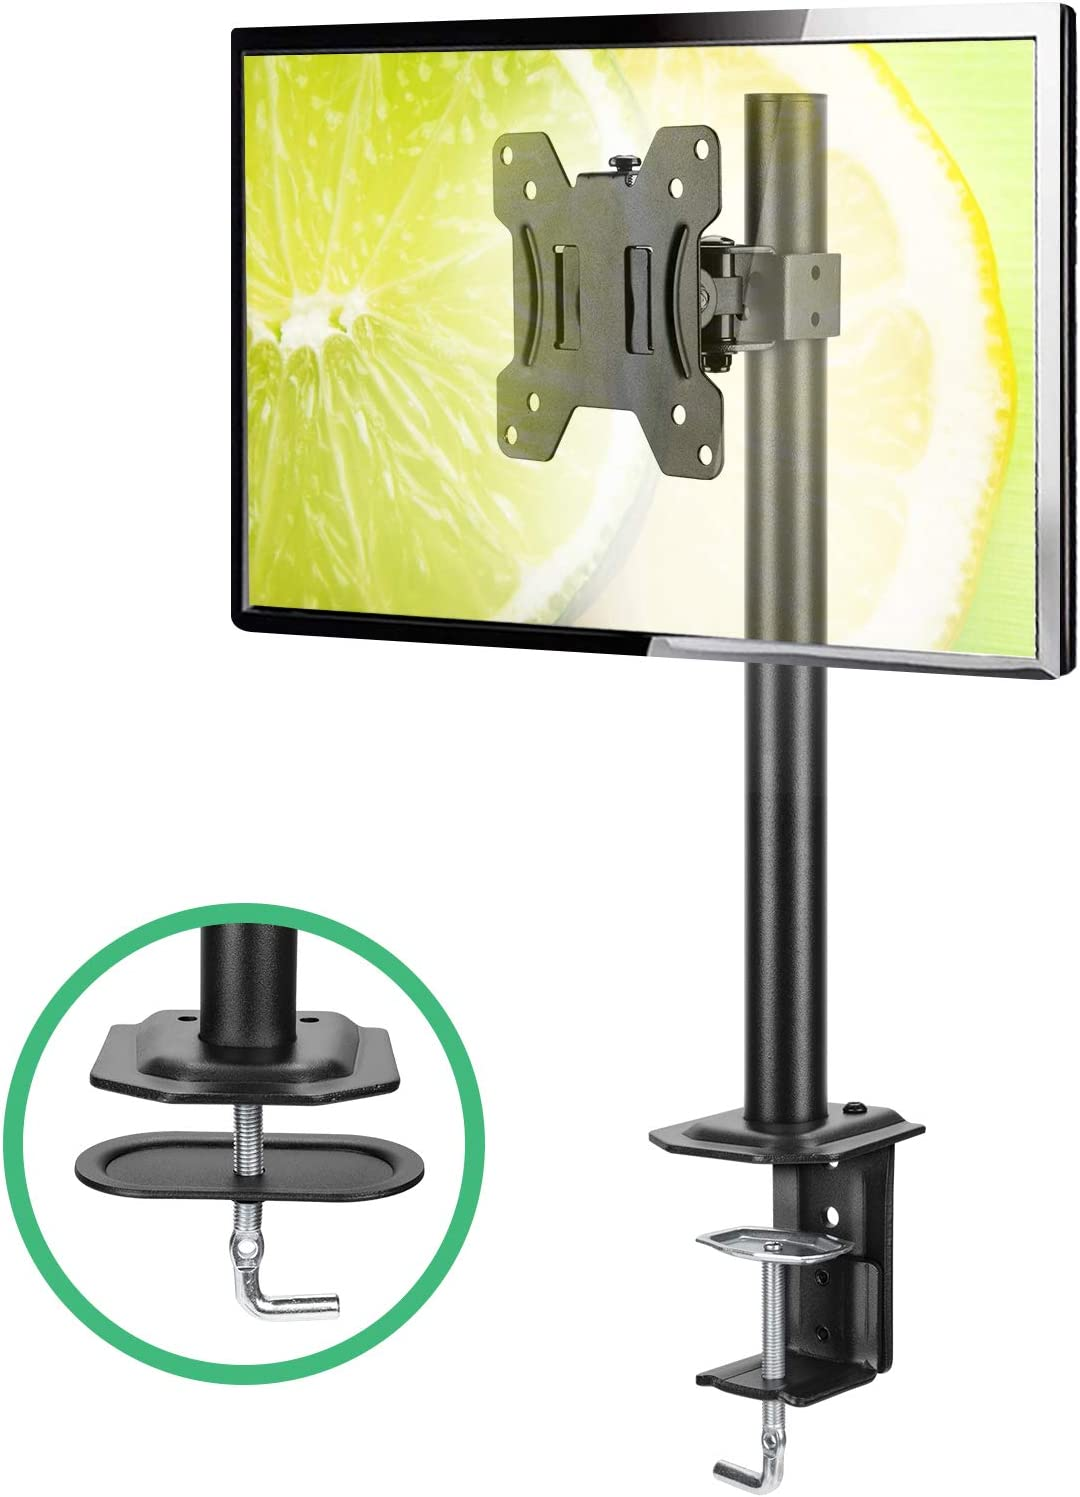 Single Monitor Stand - Computer Monitor Stand for 13 inch to 32 inch Screen, Adjustable Height, Tilt, Swivel, Rotation, Weight up to 17.6lbs